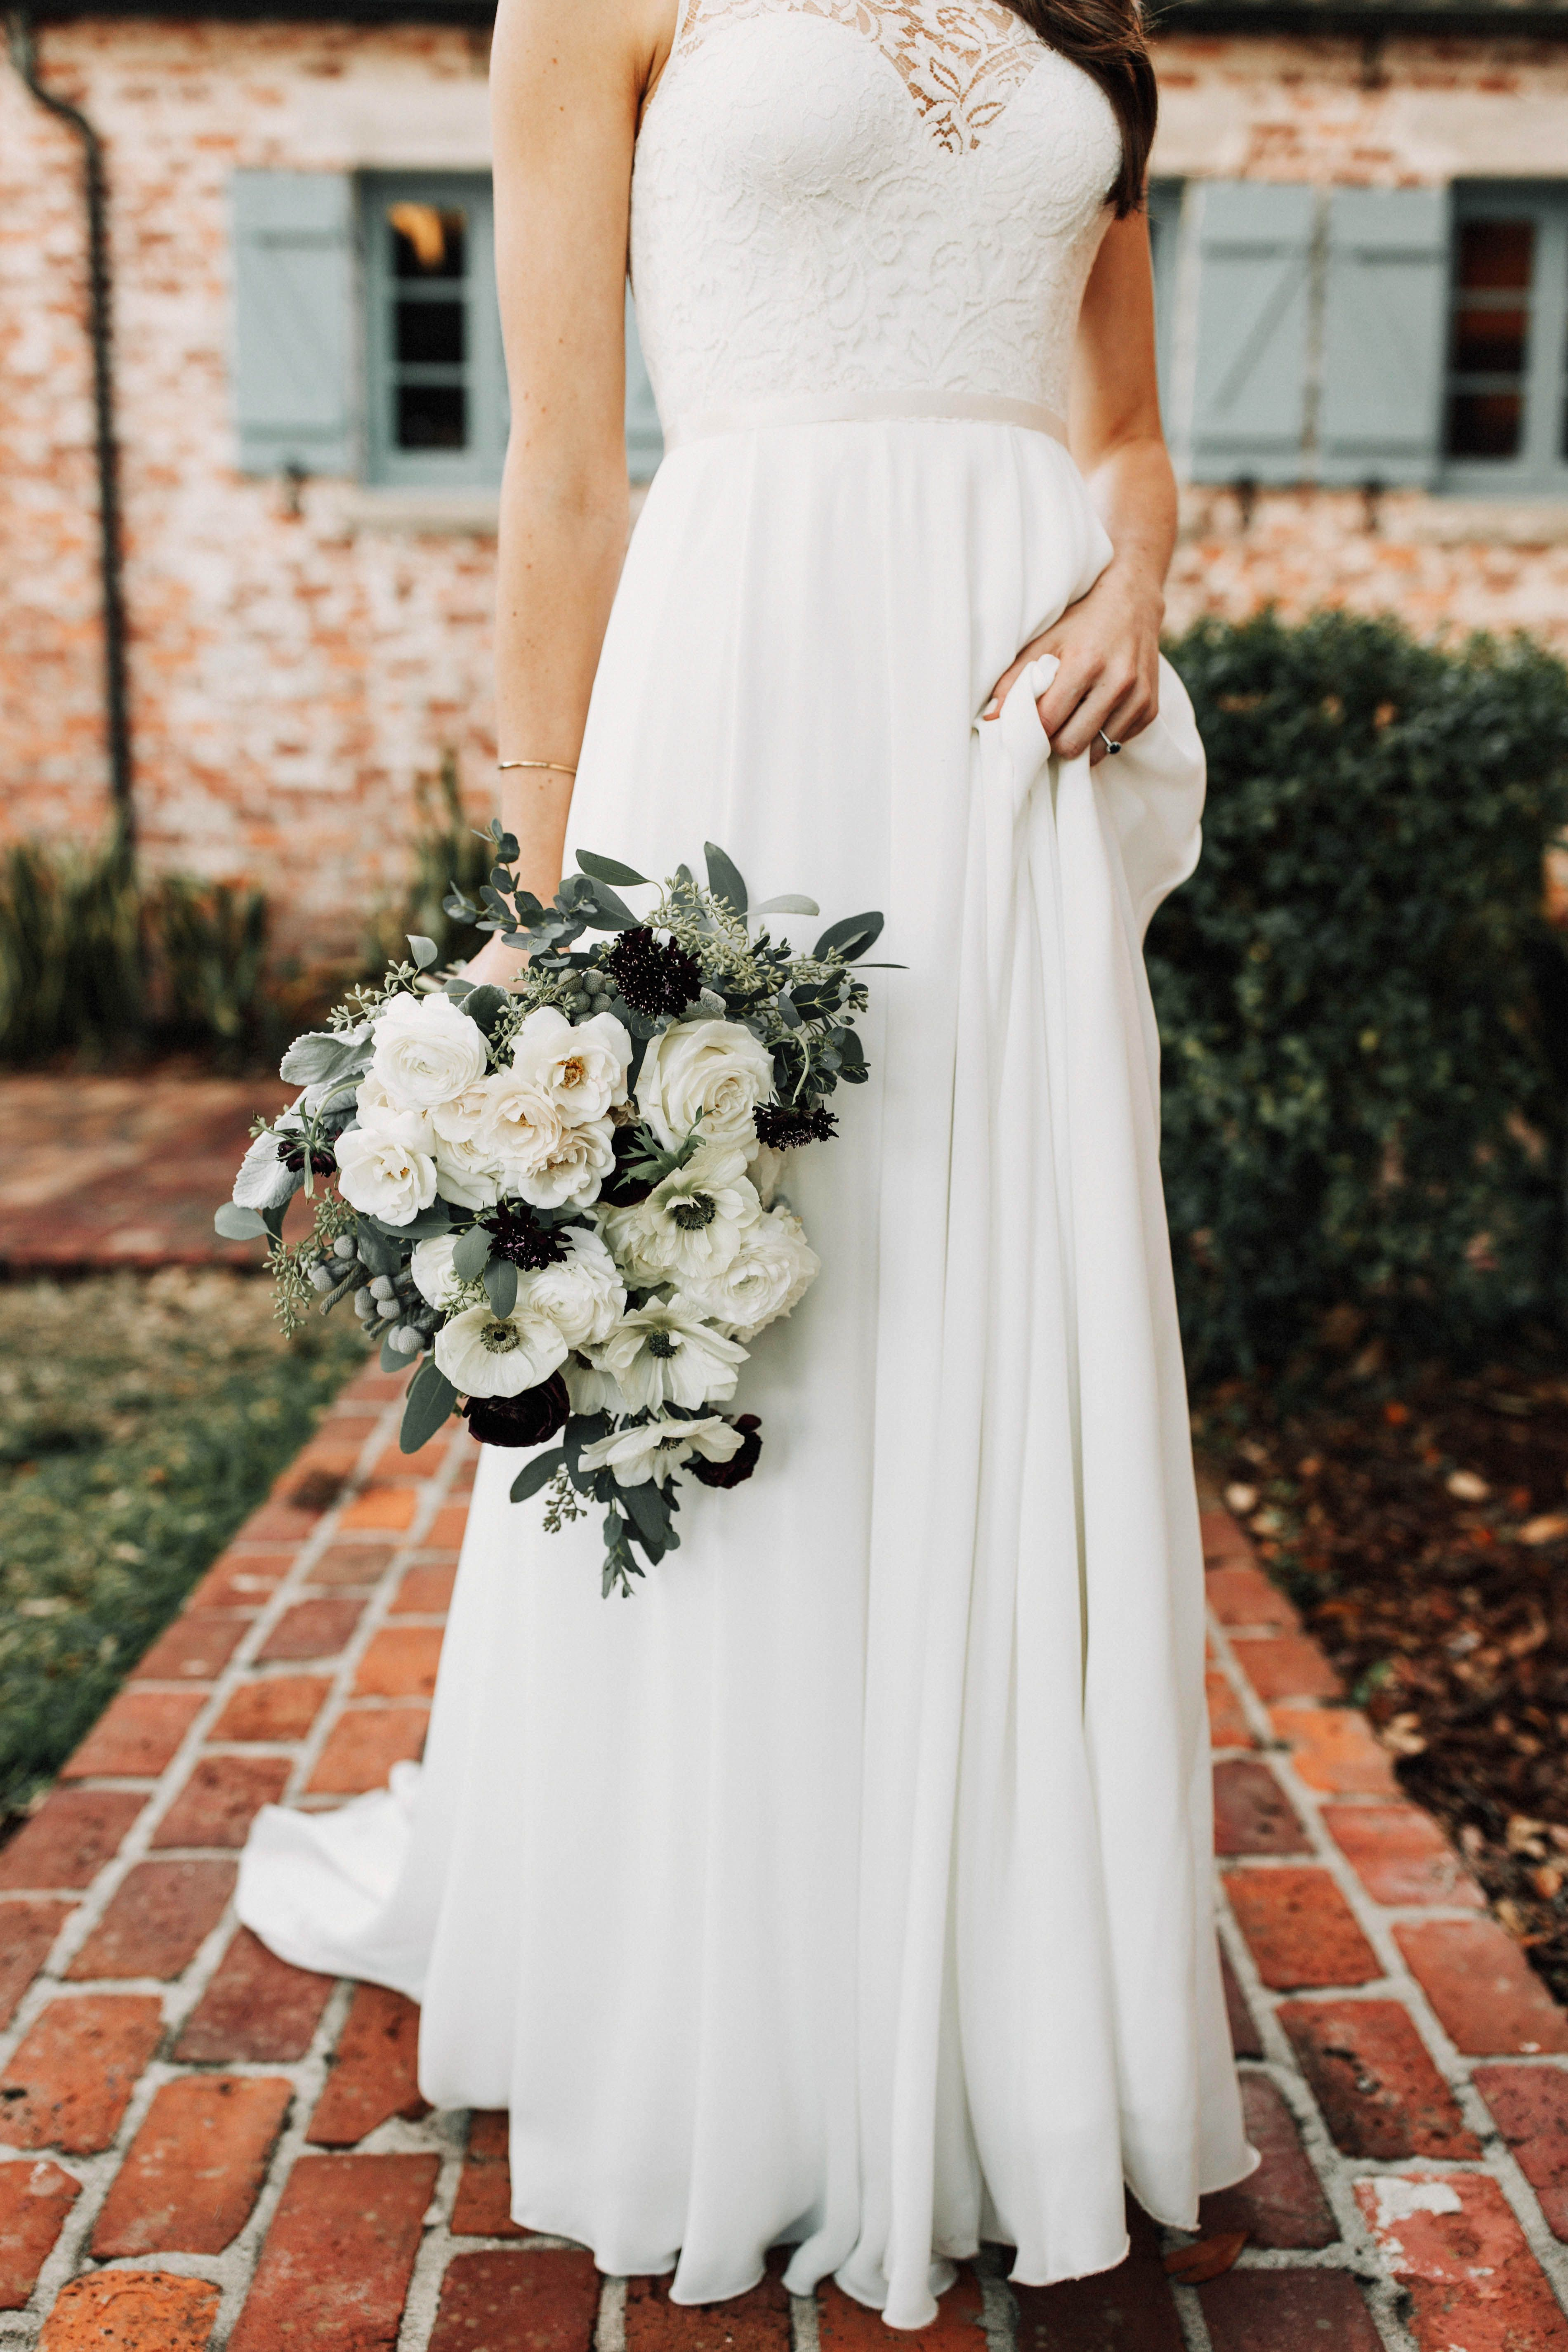 A Bride In Her Lace Gown Holds Her Loose Bridal Bouquet Of White